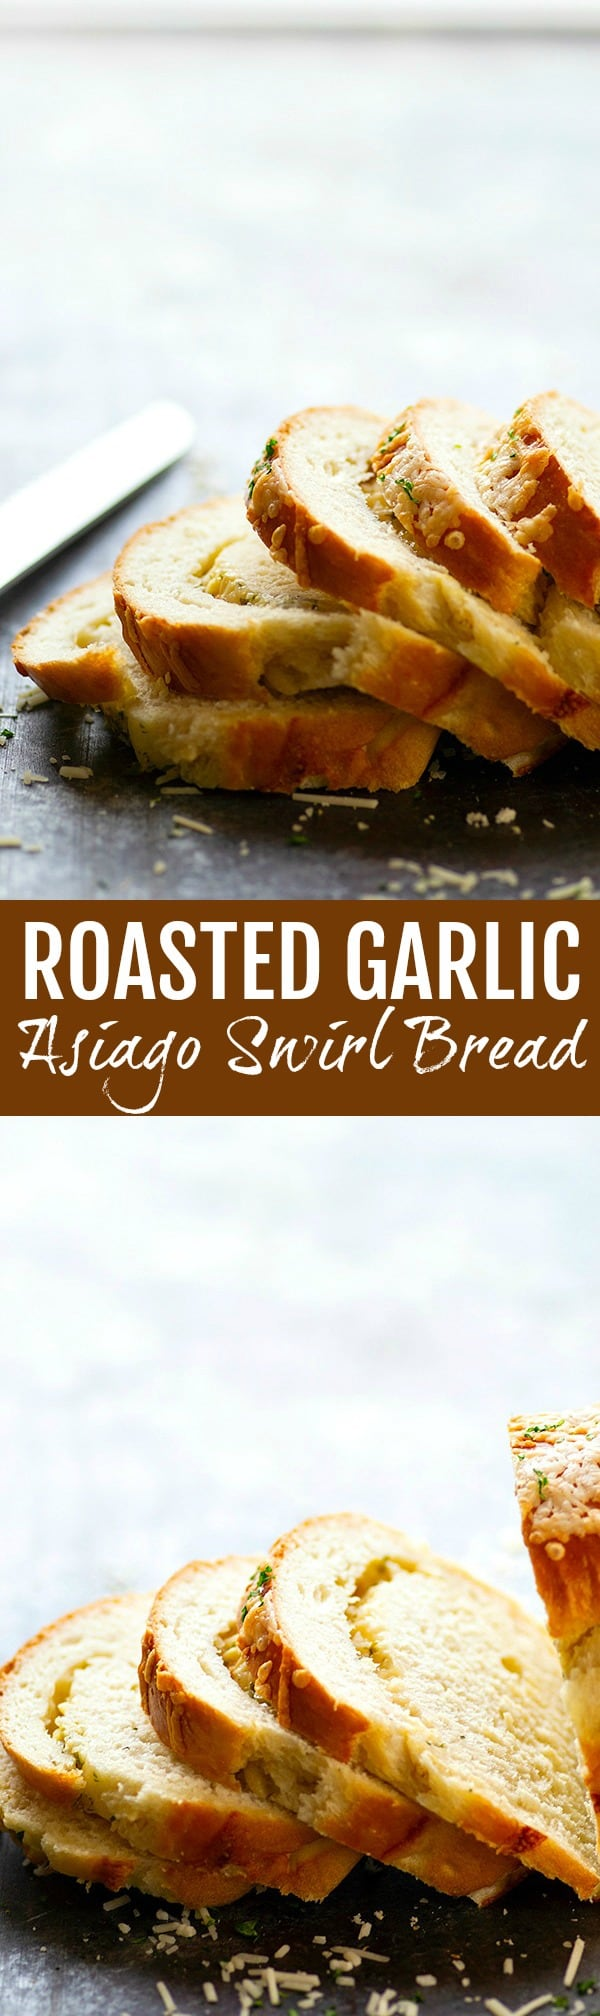 Roasted Garlic Asiago Swirl Bread - Flavorful roasted garlic and sharp Asiago cheese are swirled into this incredibly soft and tender yeast bread.